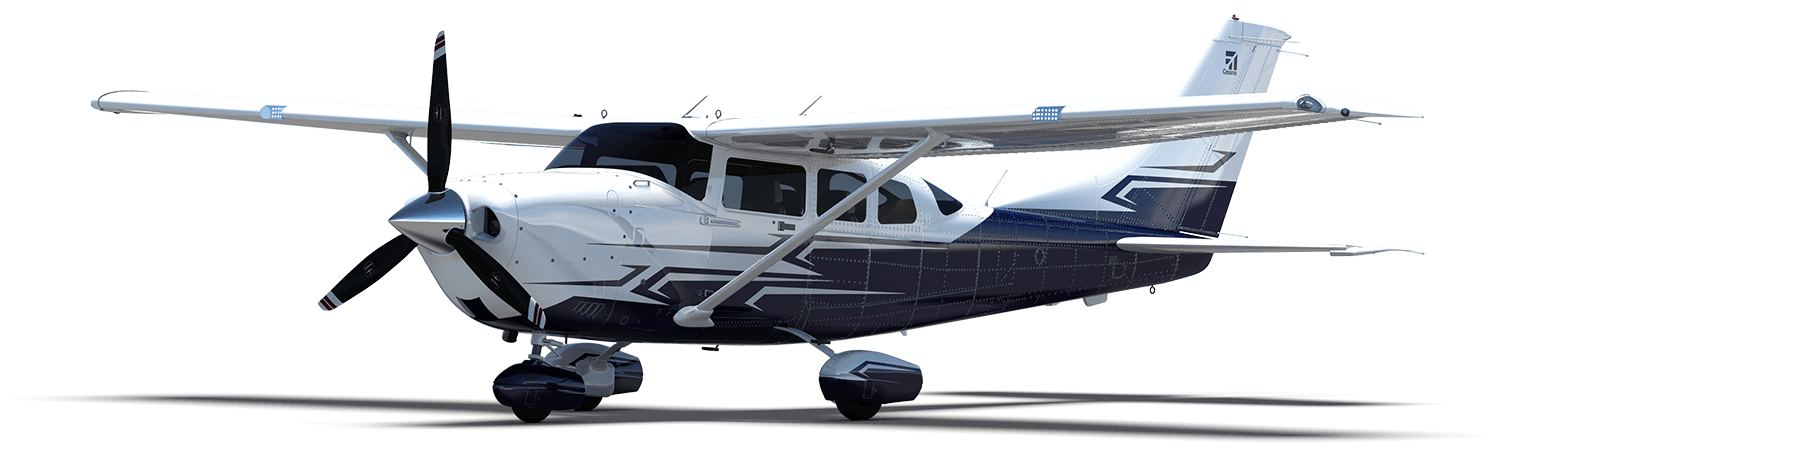 Cessna Turbo Stationair HD – EMAIR Havacılık